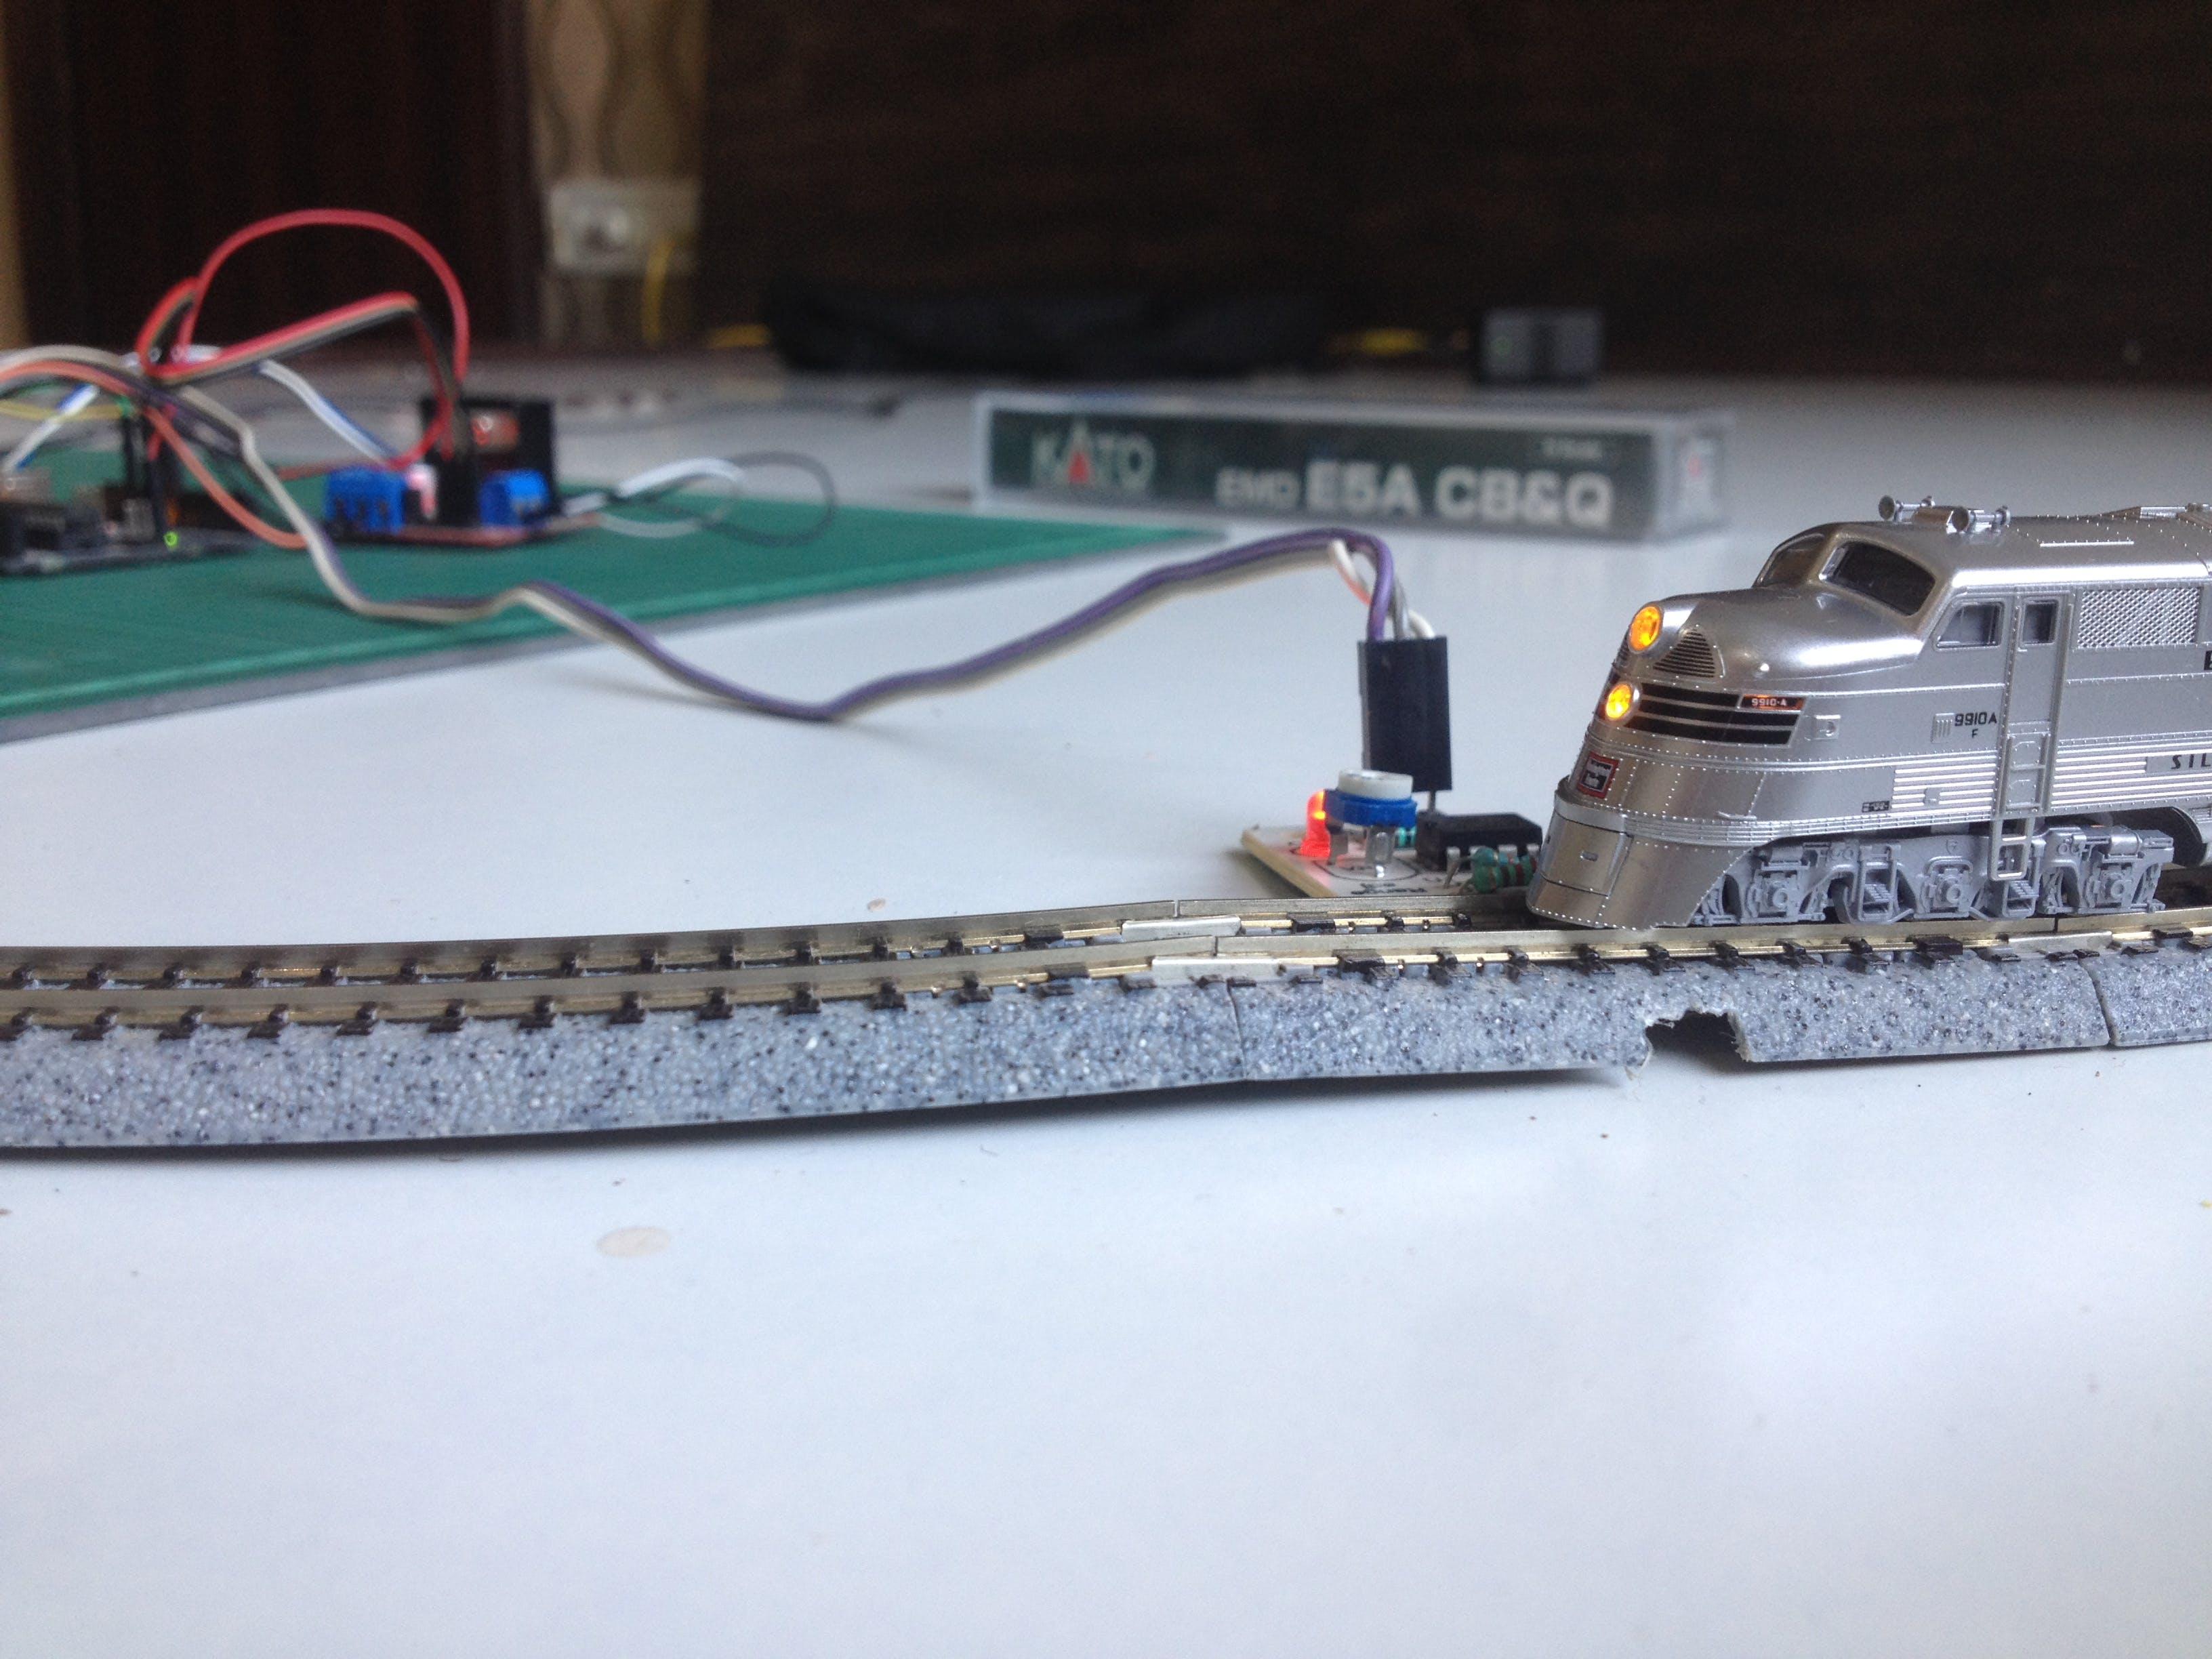 Simple Automated Point to Point Model Railroad